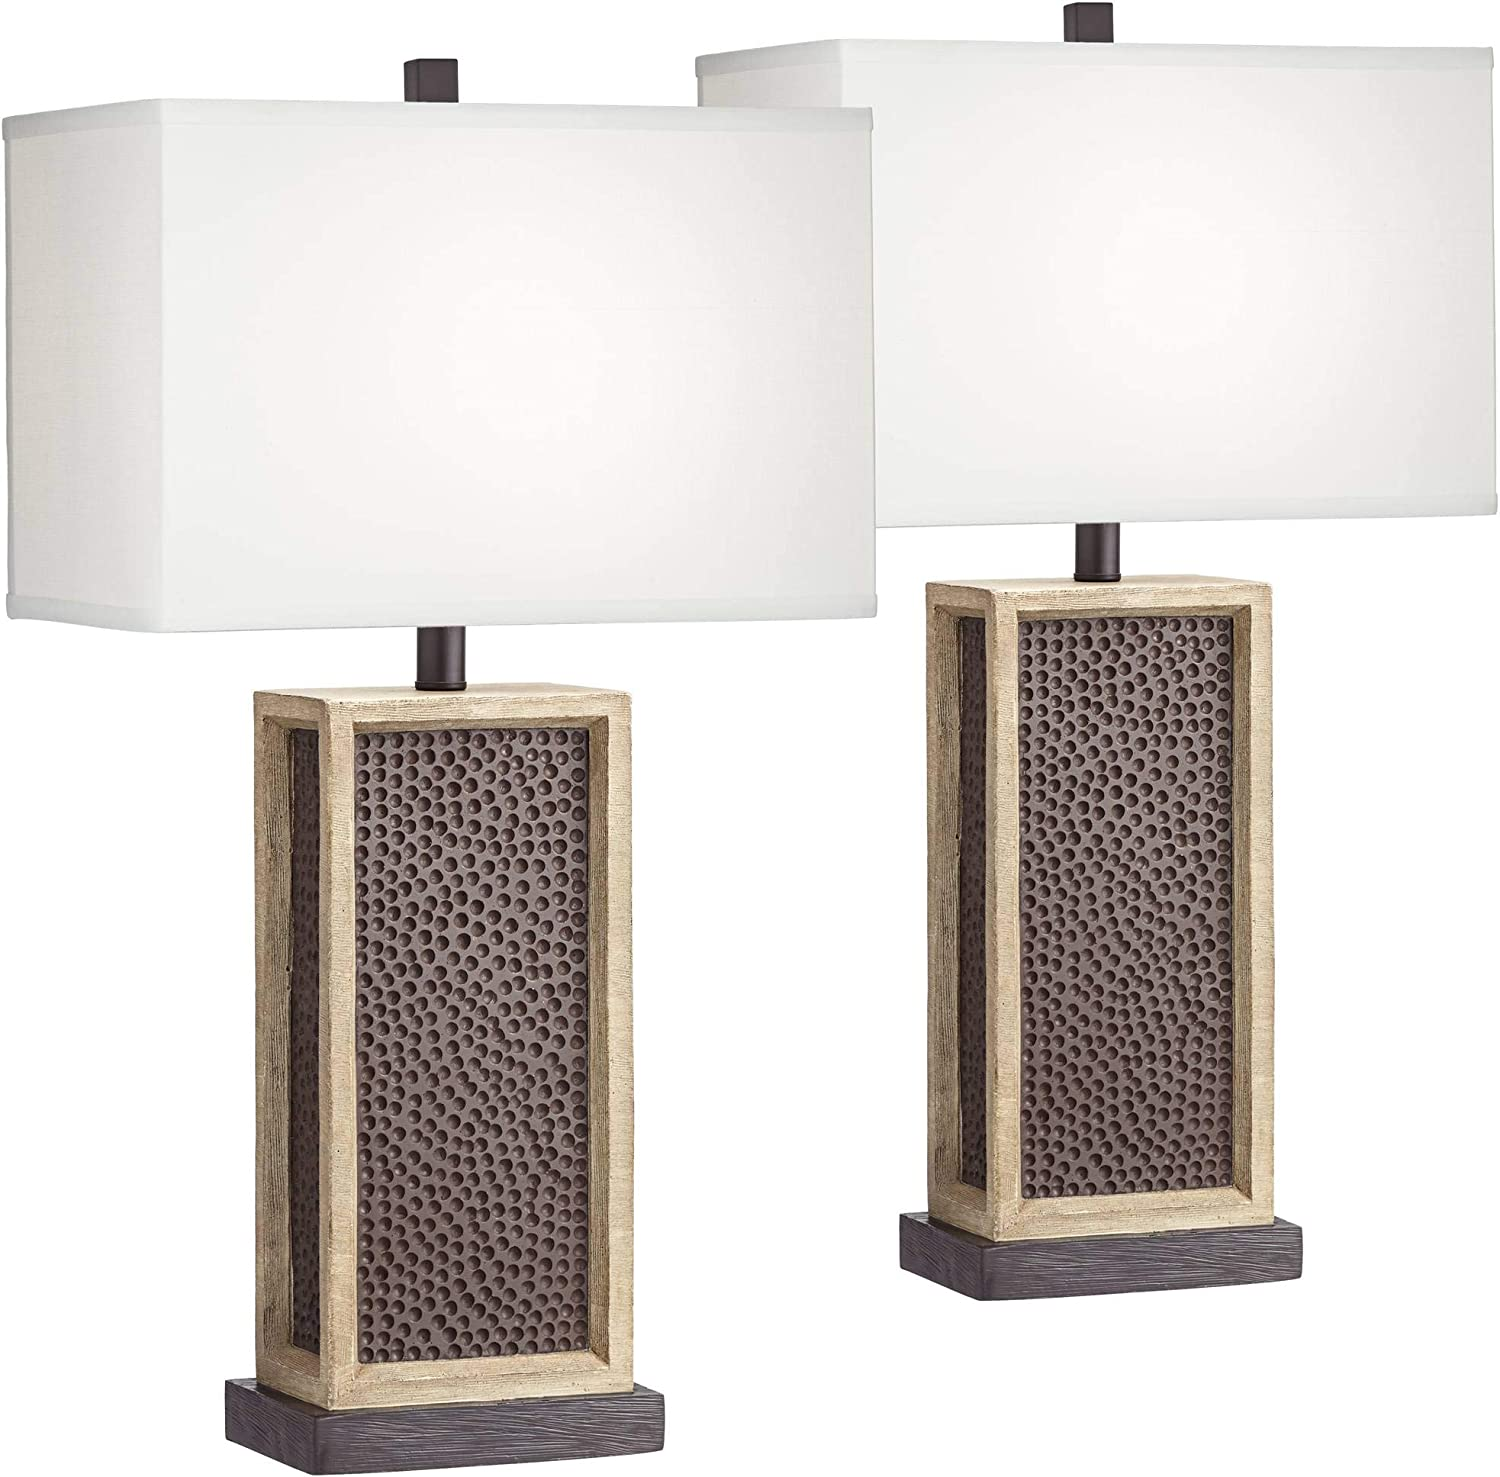 Leandro Modern Rustic Table Lamps Set of 2 LED Dimmable Speckled Brown Column White Rectangular Shade Decor for Living Room Bedroom House Bedside Nightstand Home Office Family - John Timberland